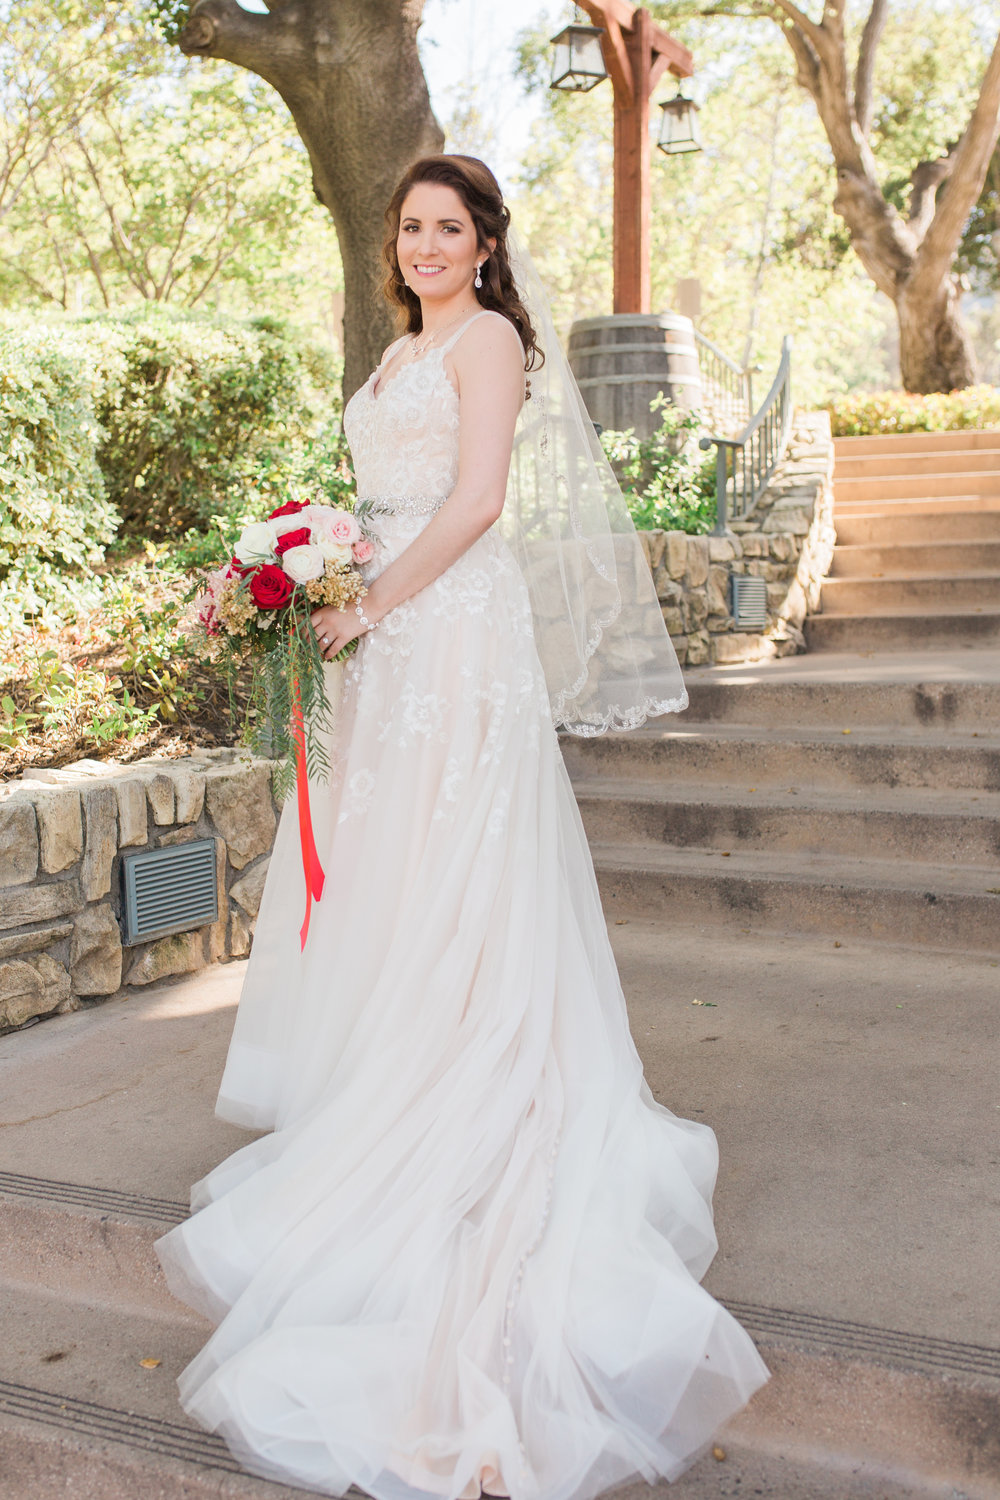 heather anderson photography, winery weddings, temecula wedding photographer